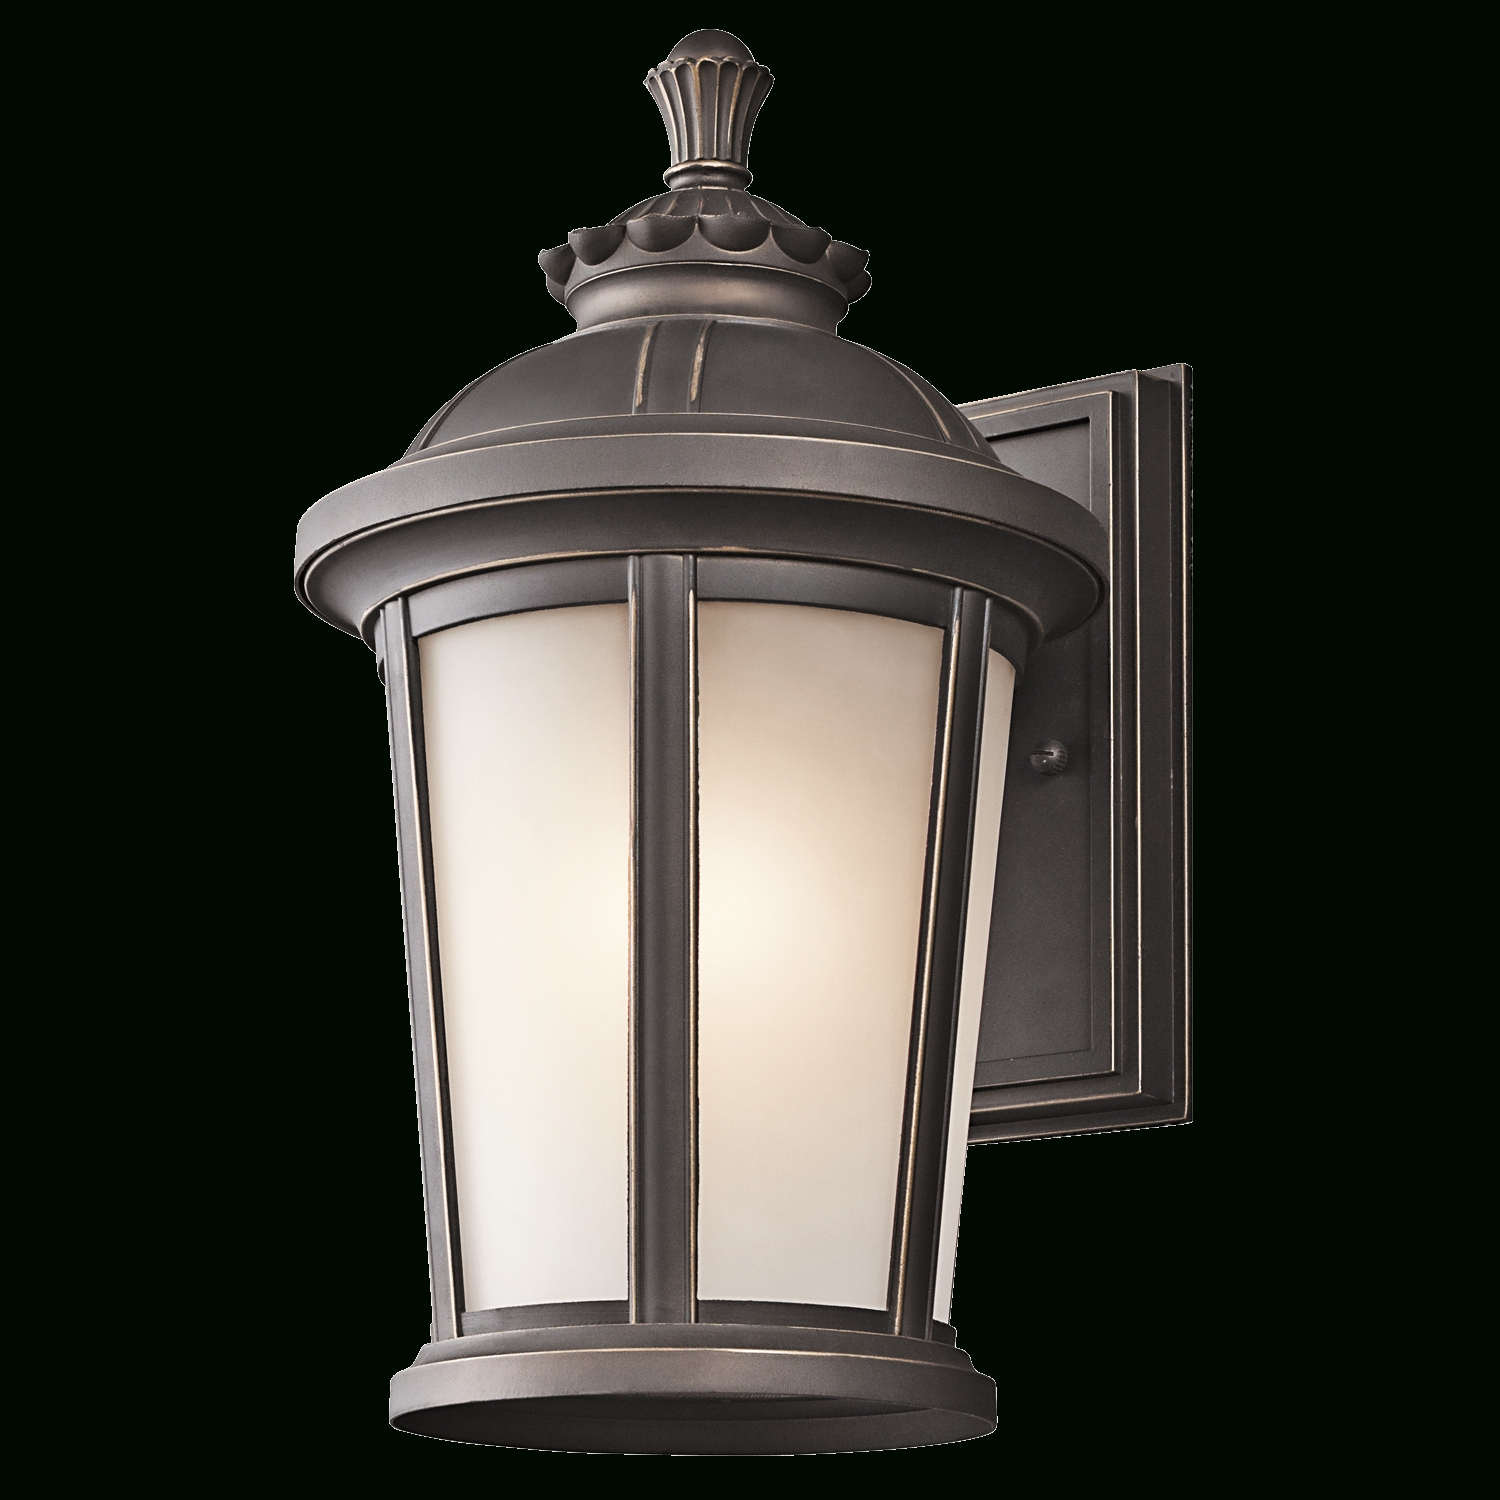 Garden Porch Light Fixtures At Wayfair Regarding Well Known Missionshaker Outdoor Wall Lighting Wayfair Manhattan 1 Light (Gallery 5 of 20)